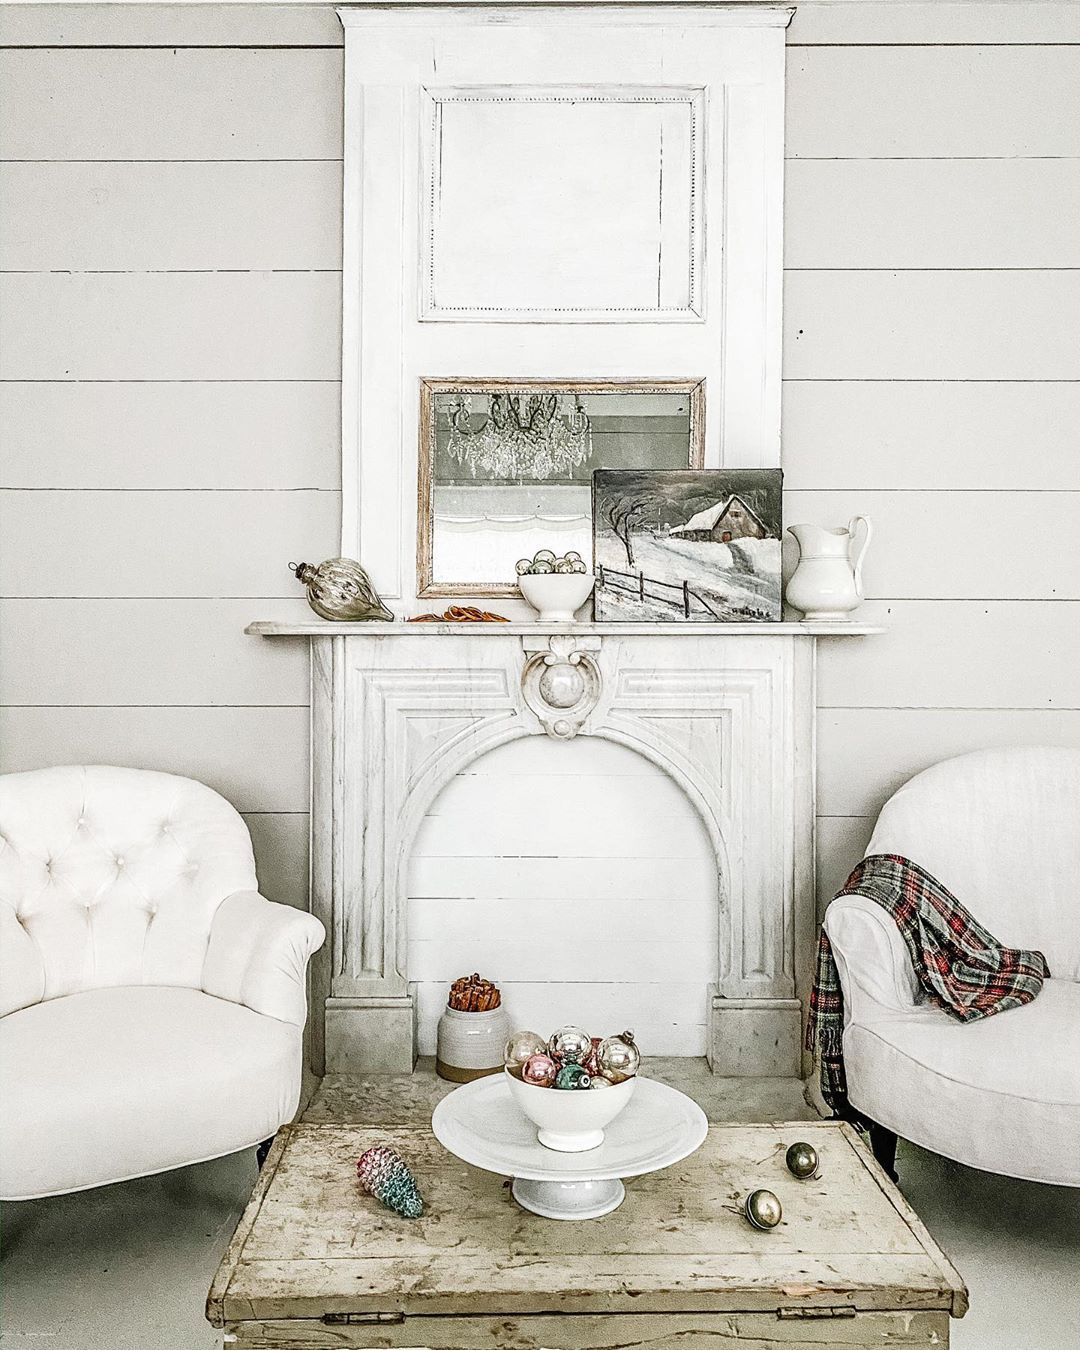 Dreamy Whites Lifestyle On Instagram Happy Wednesday Dreamy Whites White Living Home Decor